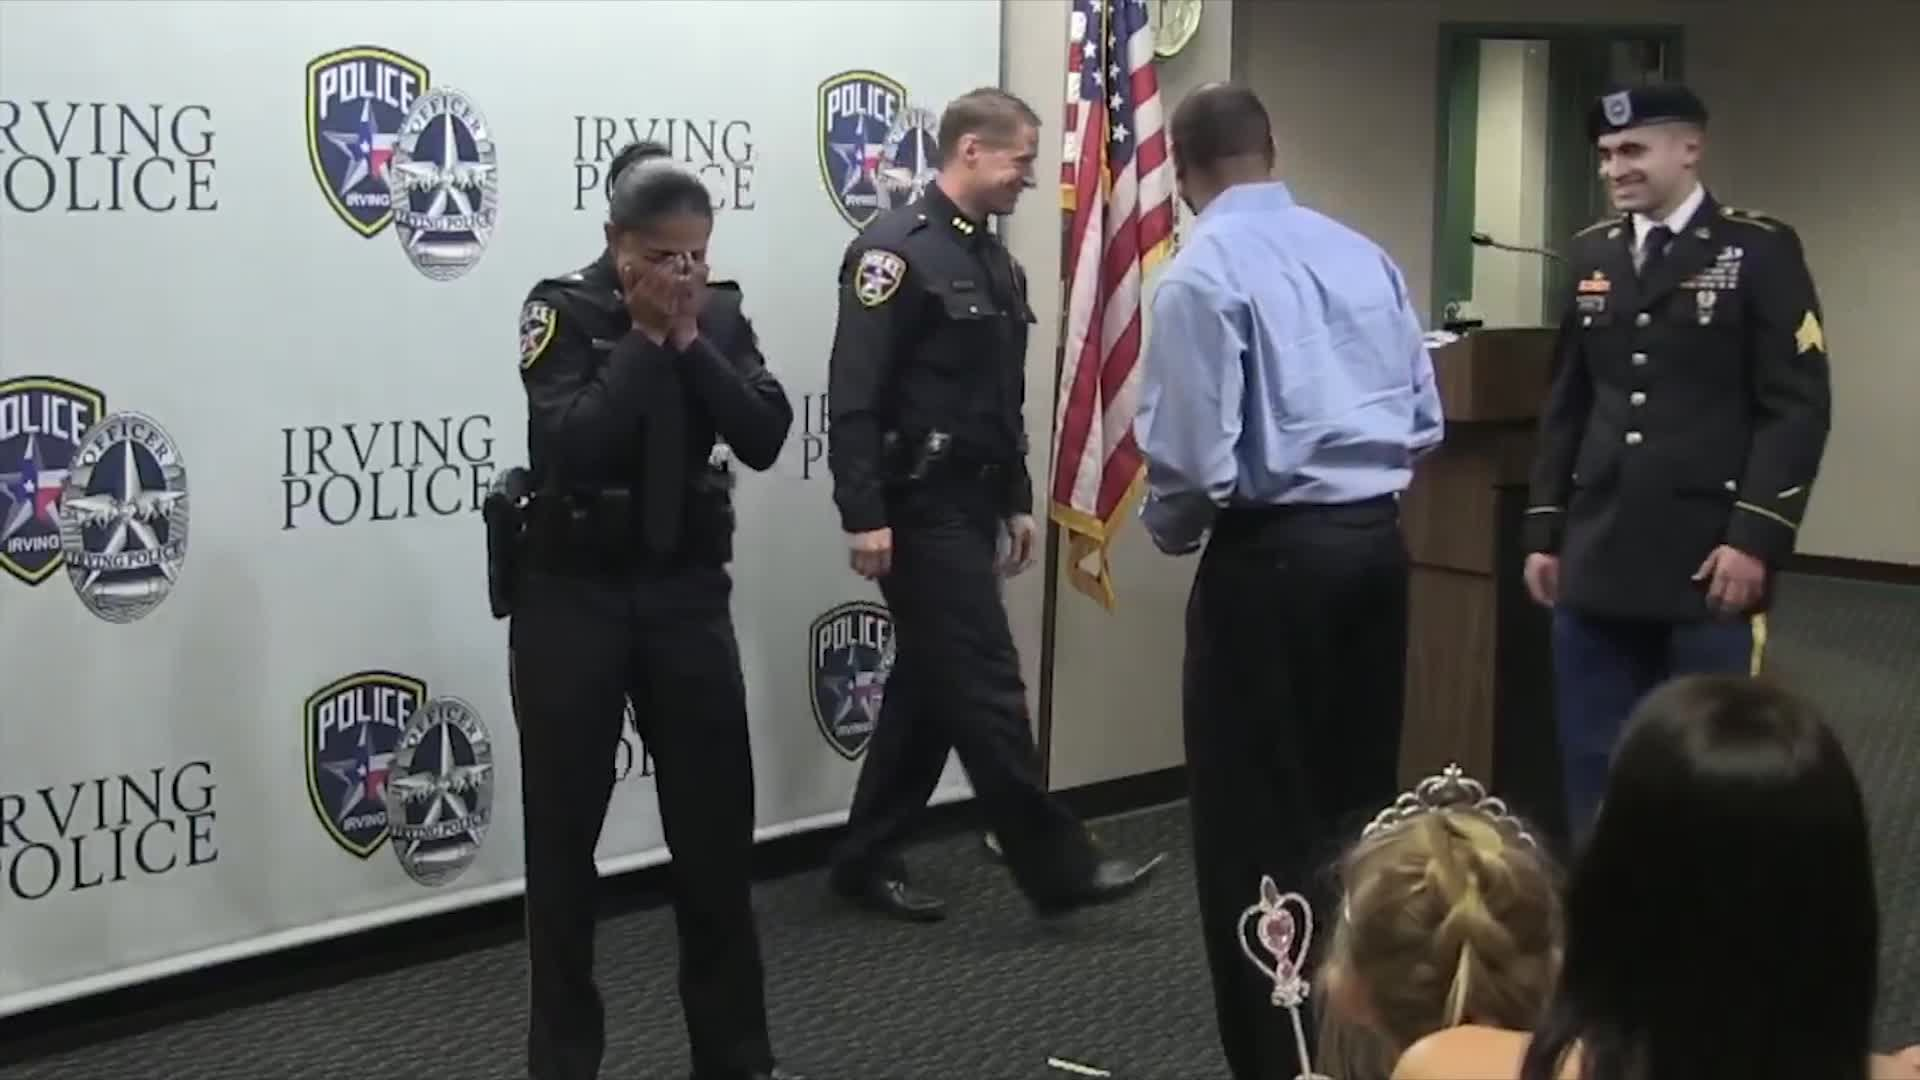 A soldier surprised his mom while she was being sworn in as a police officer